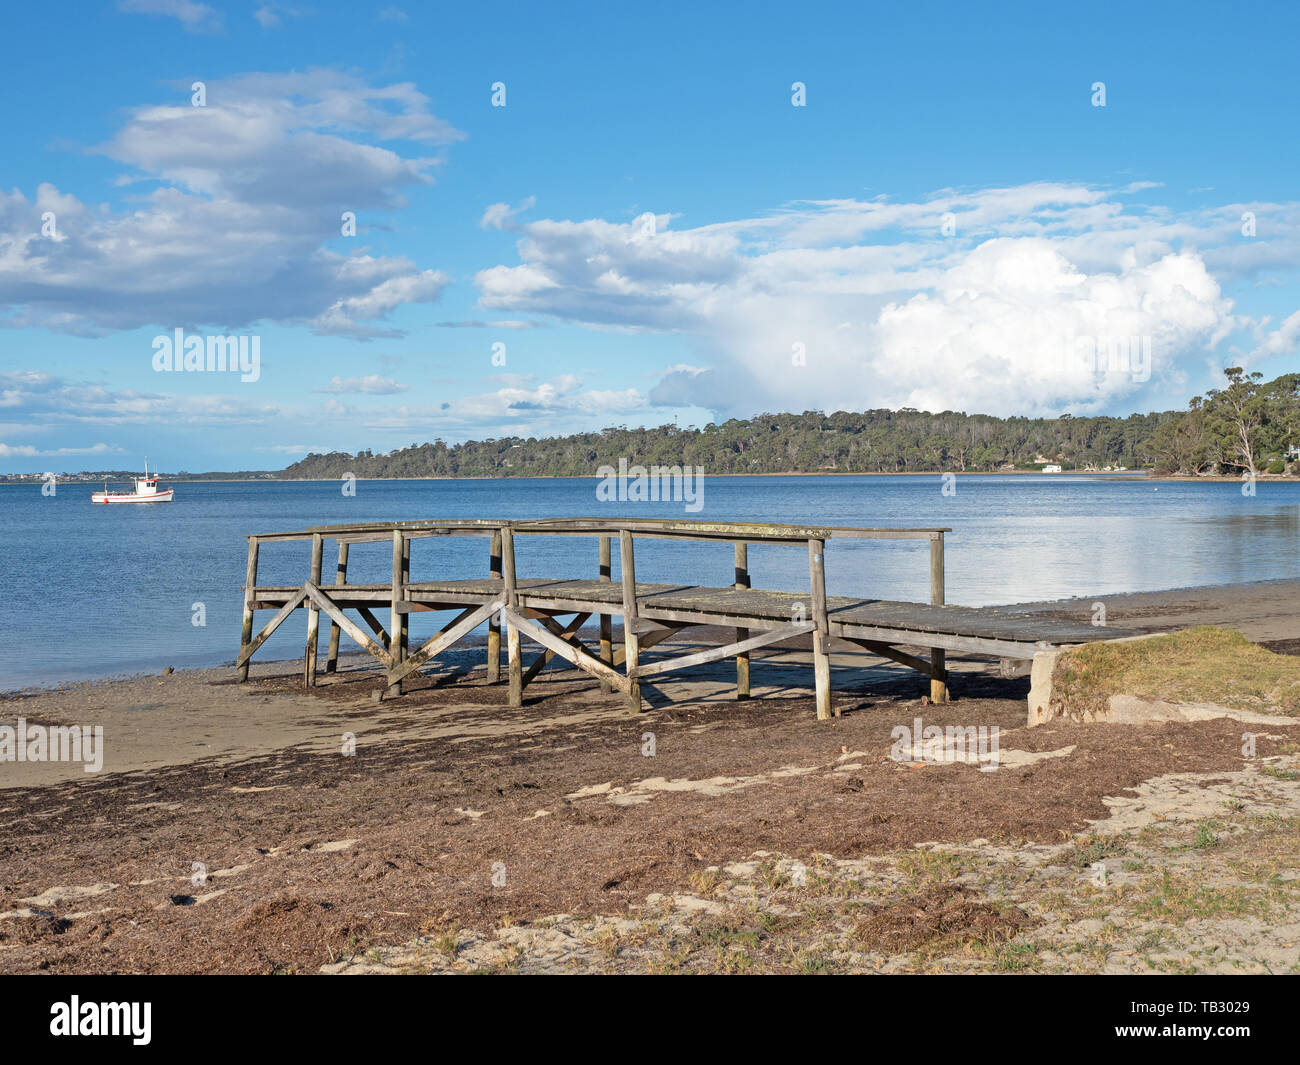 A small jetty at St Helens on the East Coast of Tasmania in Australia. Stock Photo